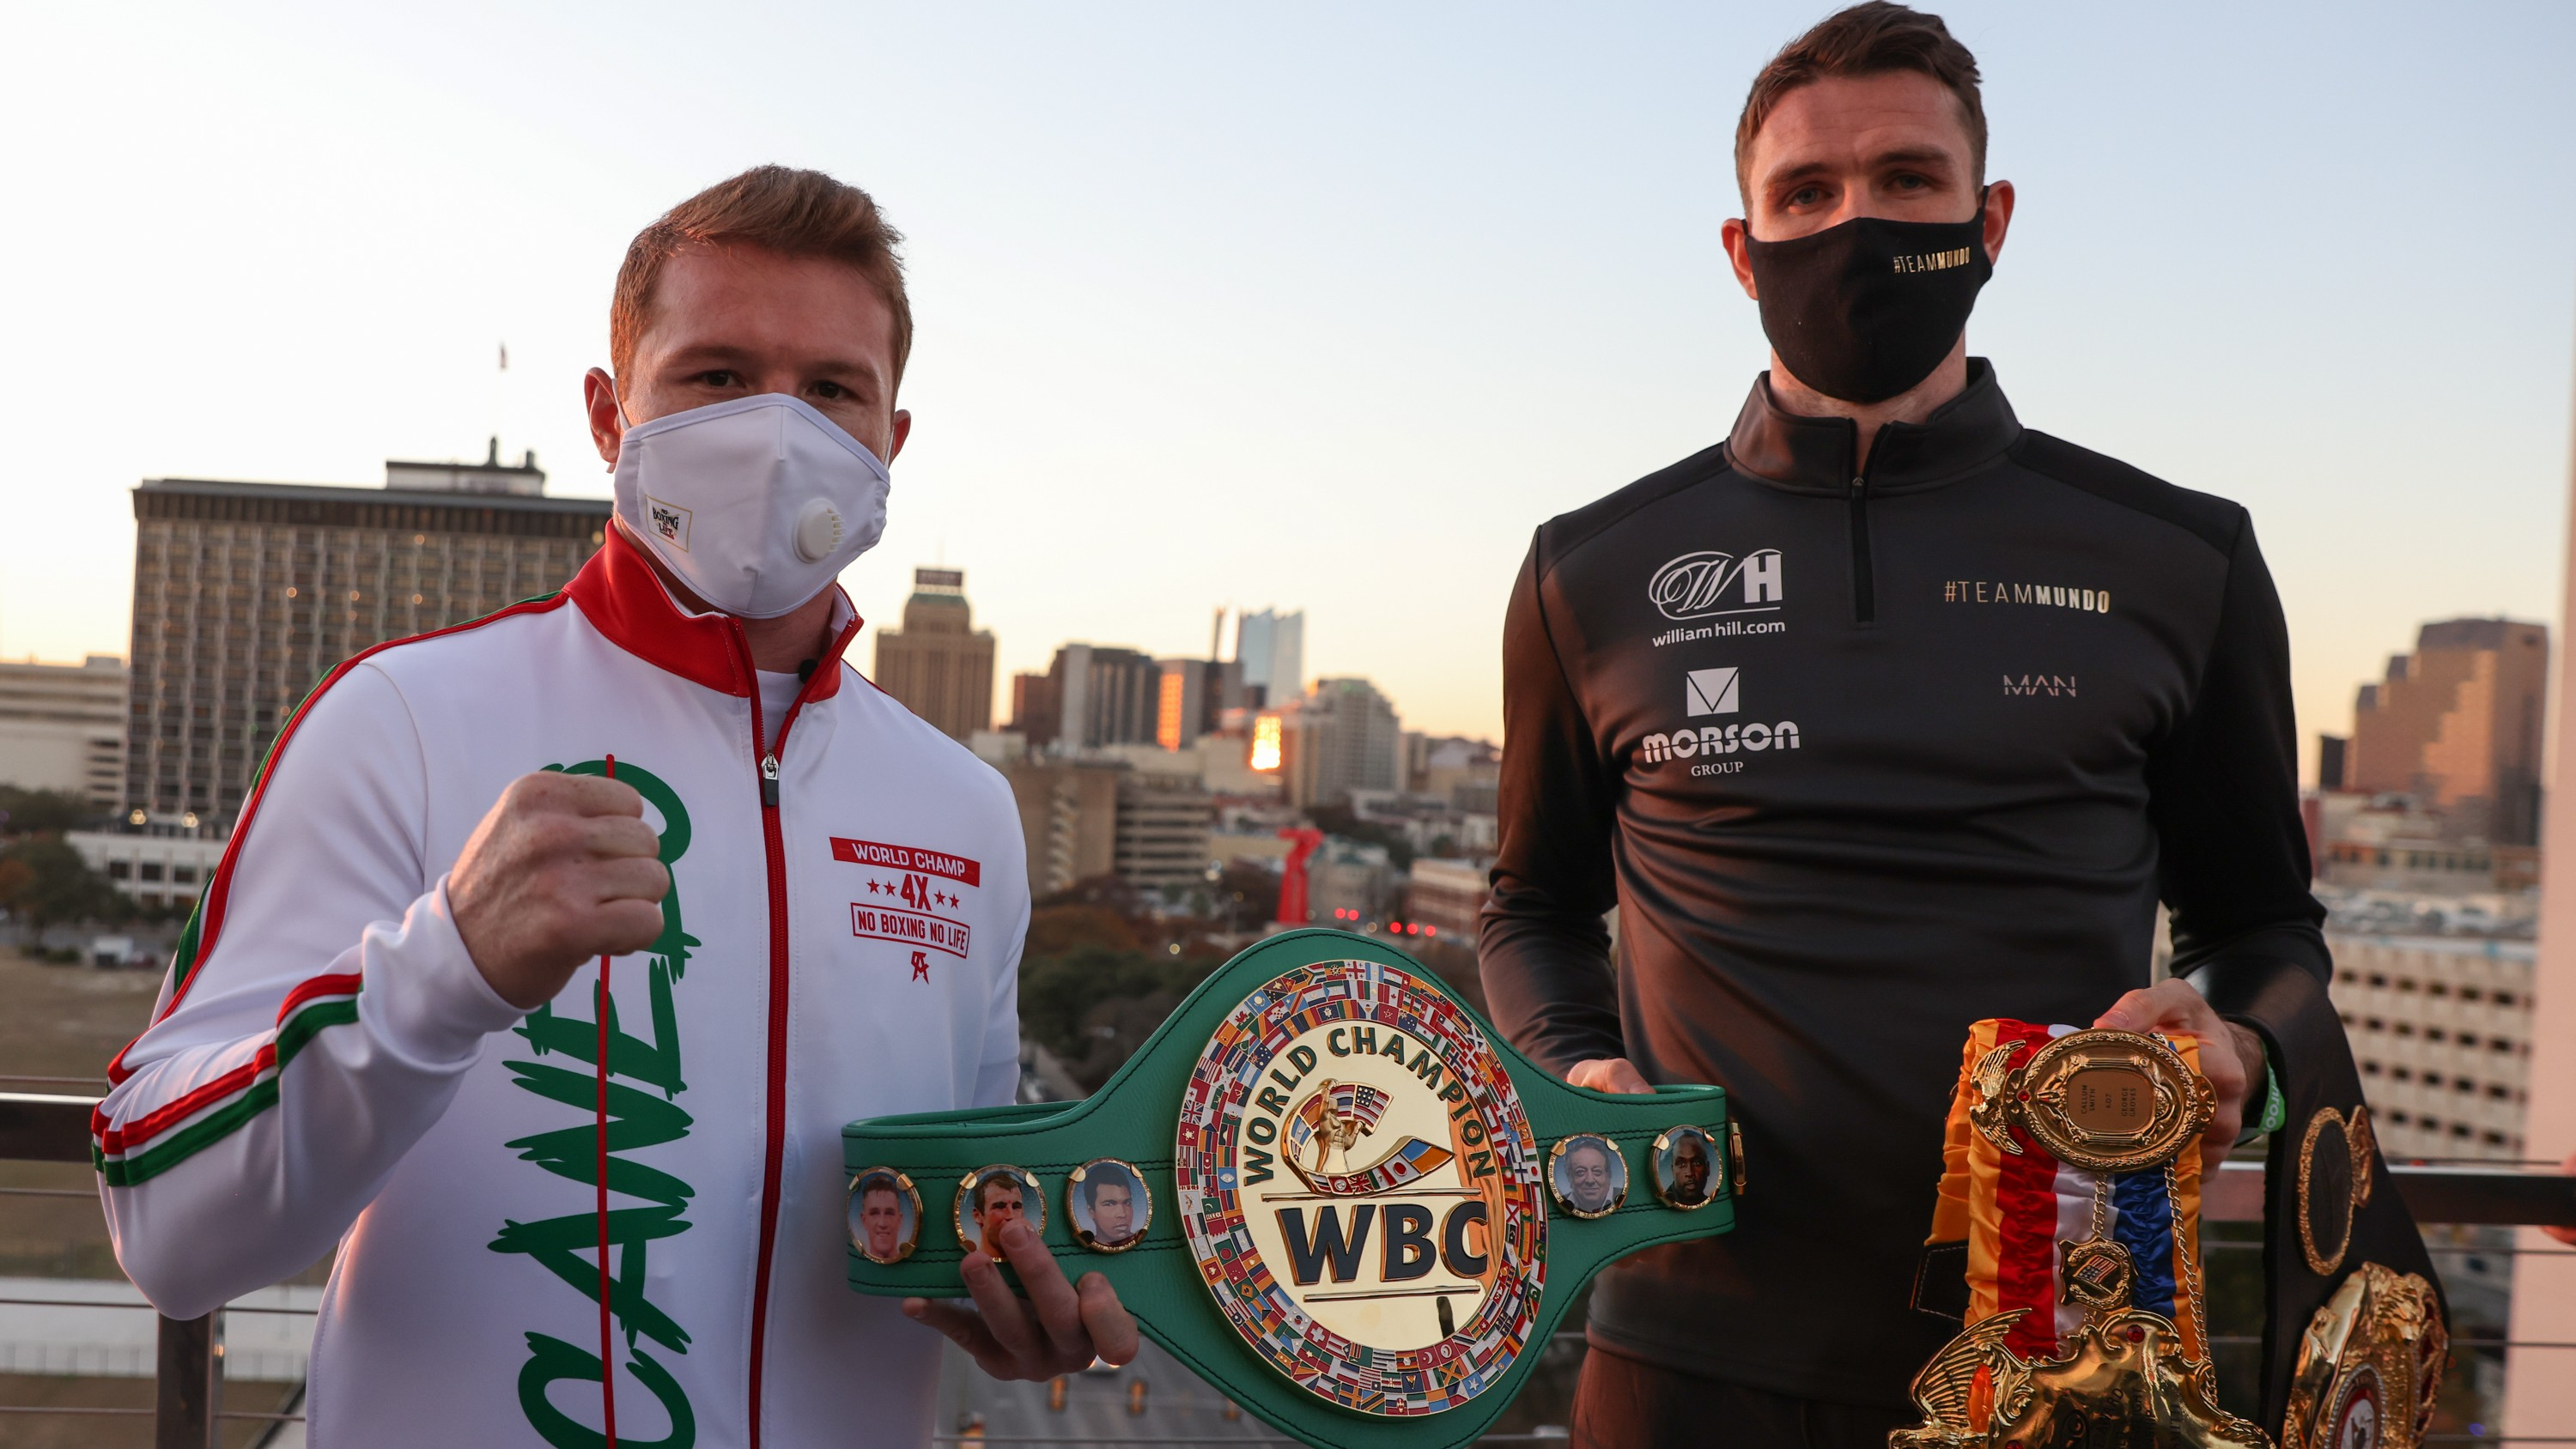 Callum Smith admits emphatic points defeat to Canelo Alvarez left him 'devastated'